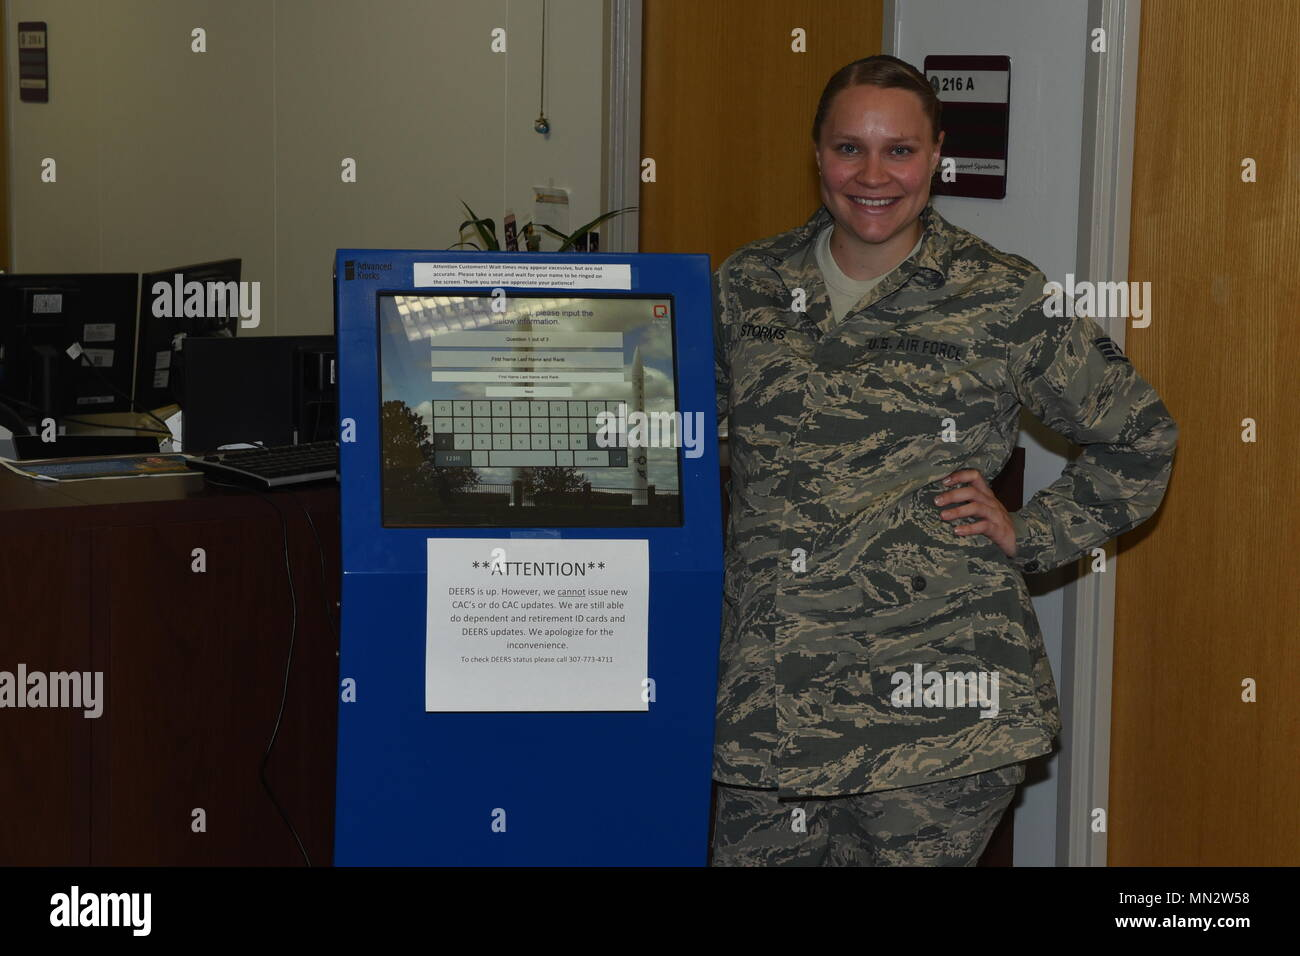 Staff Sgt. Megan Storms, 90th Force Support Squadron, reenlistments, extensions, enlisted promotions and retraining NCO in charge, poses near the new customer kiosk machine located at the Military Personnel Flight office at F.E. Warren Air Force Base, Wyo., August 9, 2017. The new system was installed to alleviate long wait times. (U.S. Air Force photo by Terry Higgins) - Stock Image